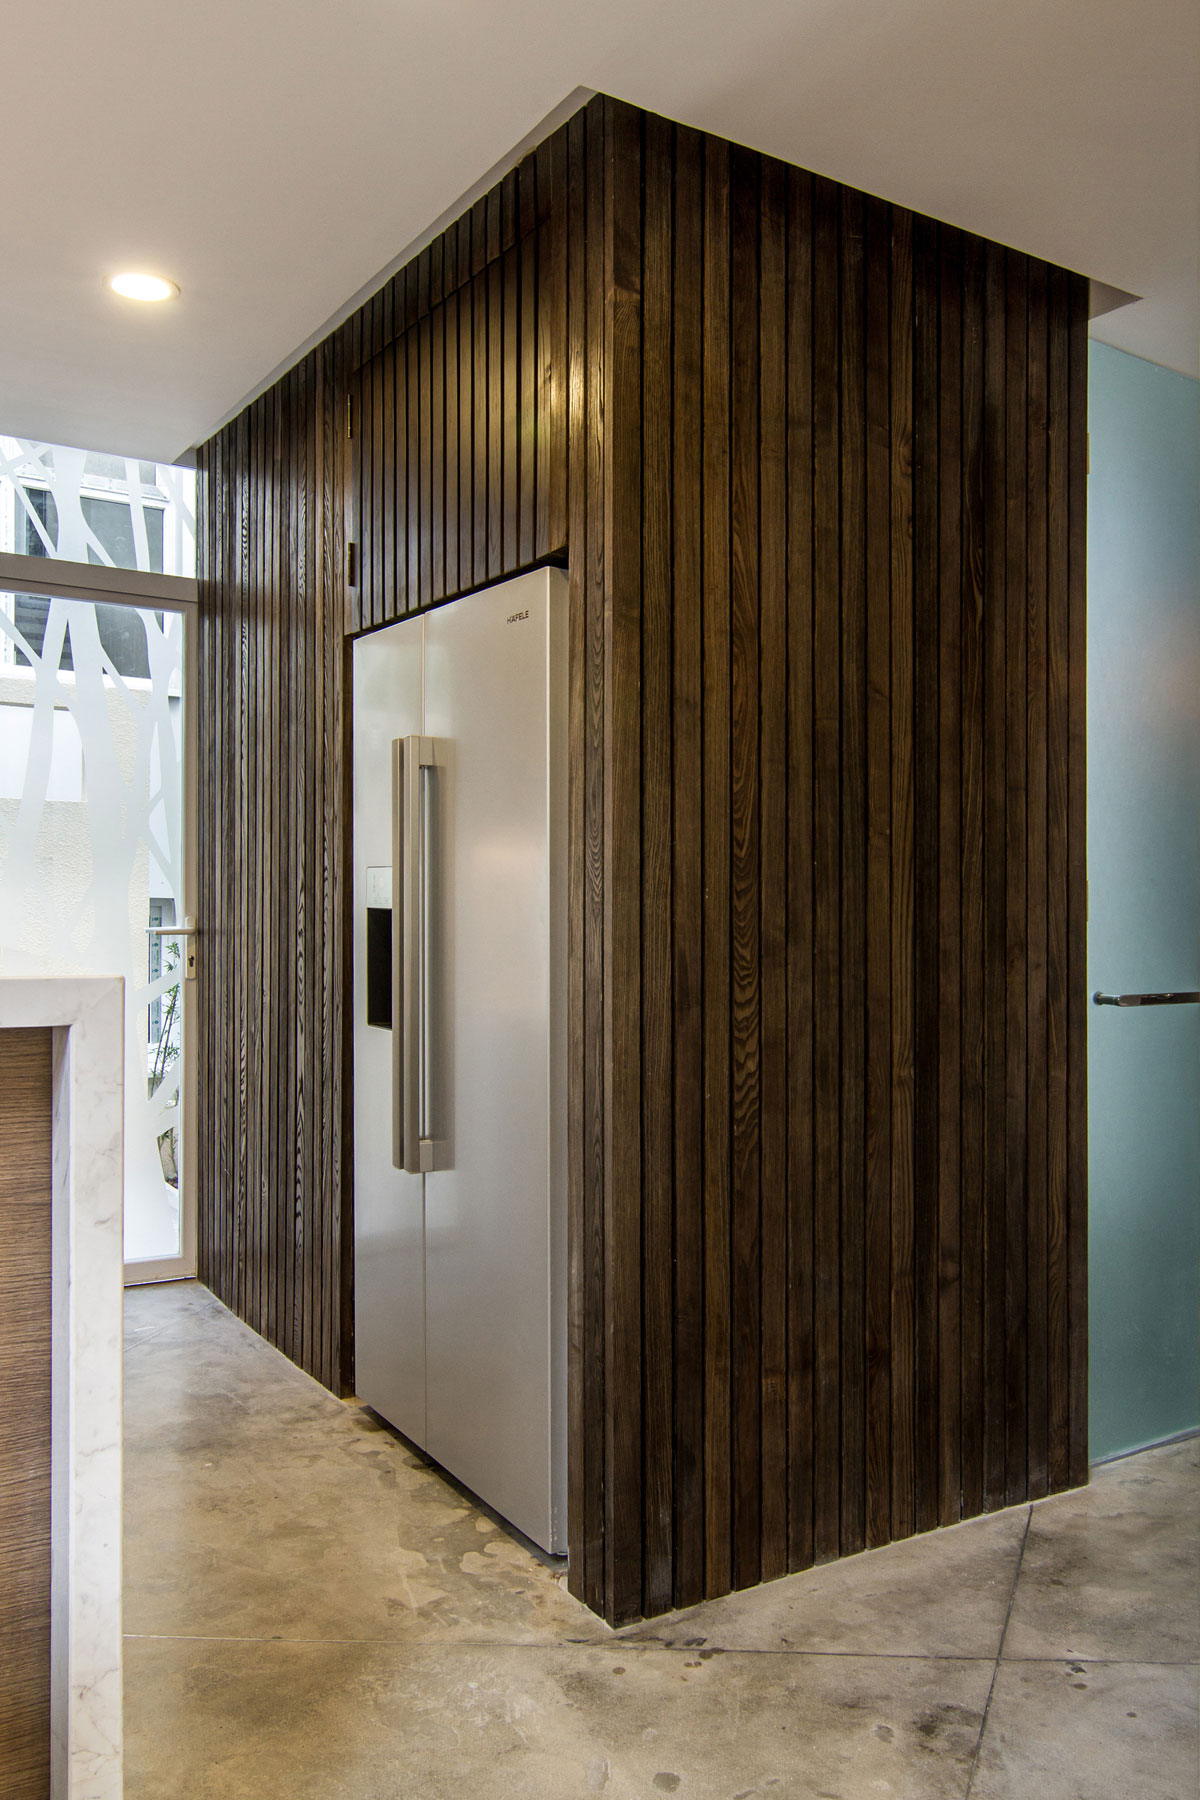 EPV Semi-Detached House Located in Ecopark Green Urban Area, Vietnam by AHL architects associates-09